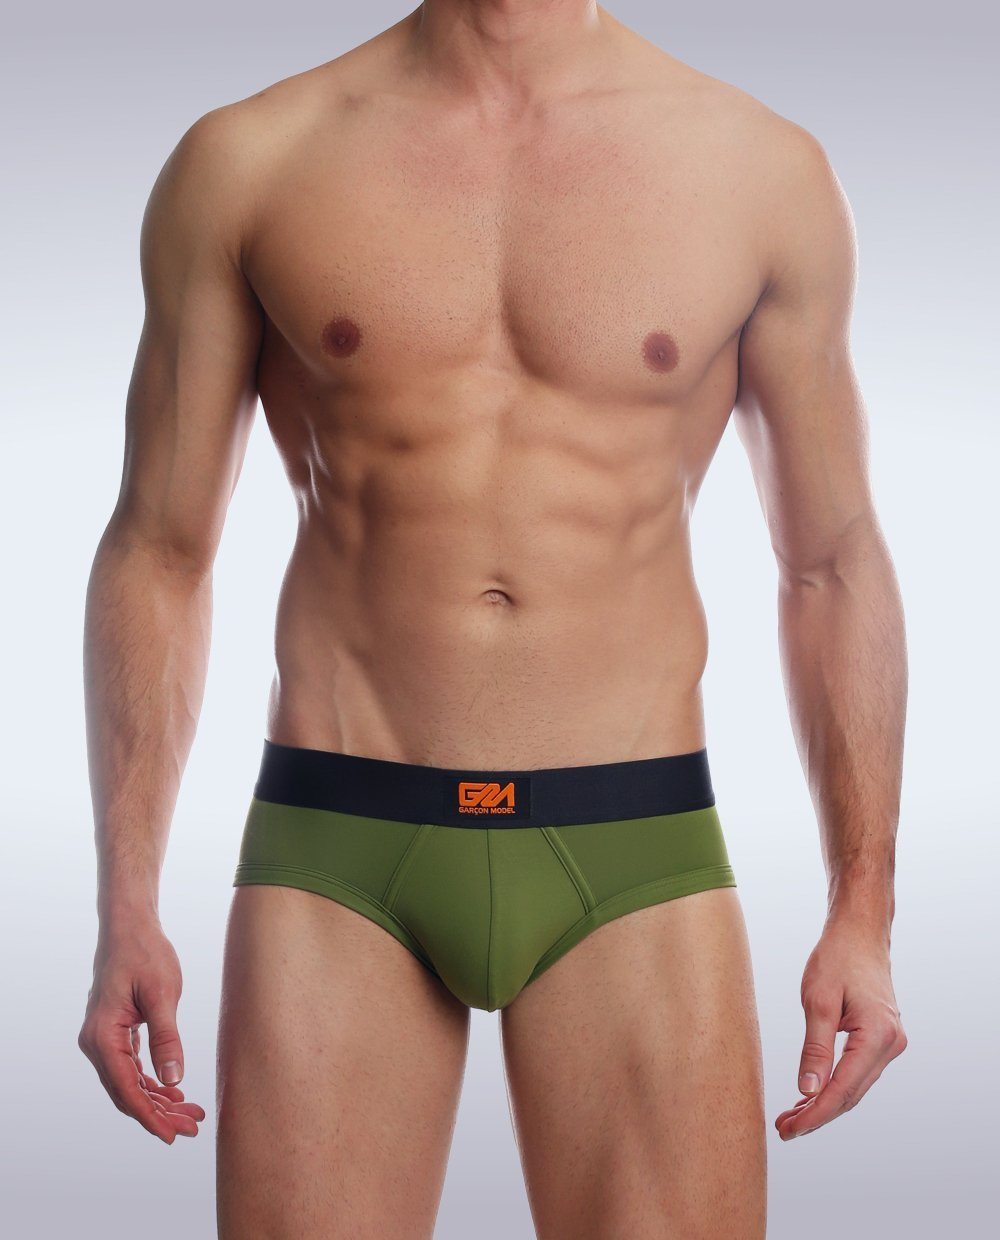 Brooklyn Briefs - Garçon Underwear sexy men's underwear Briefs Garçon Underwear